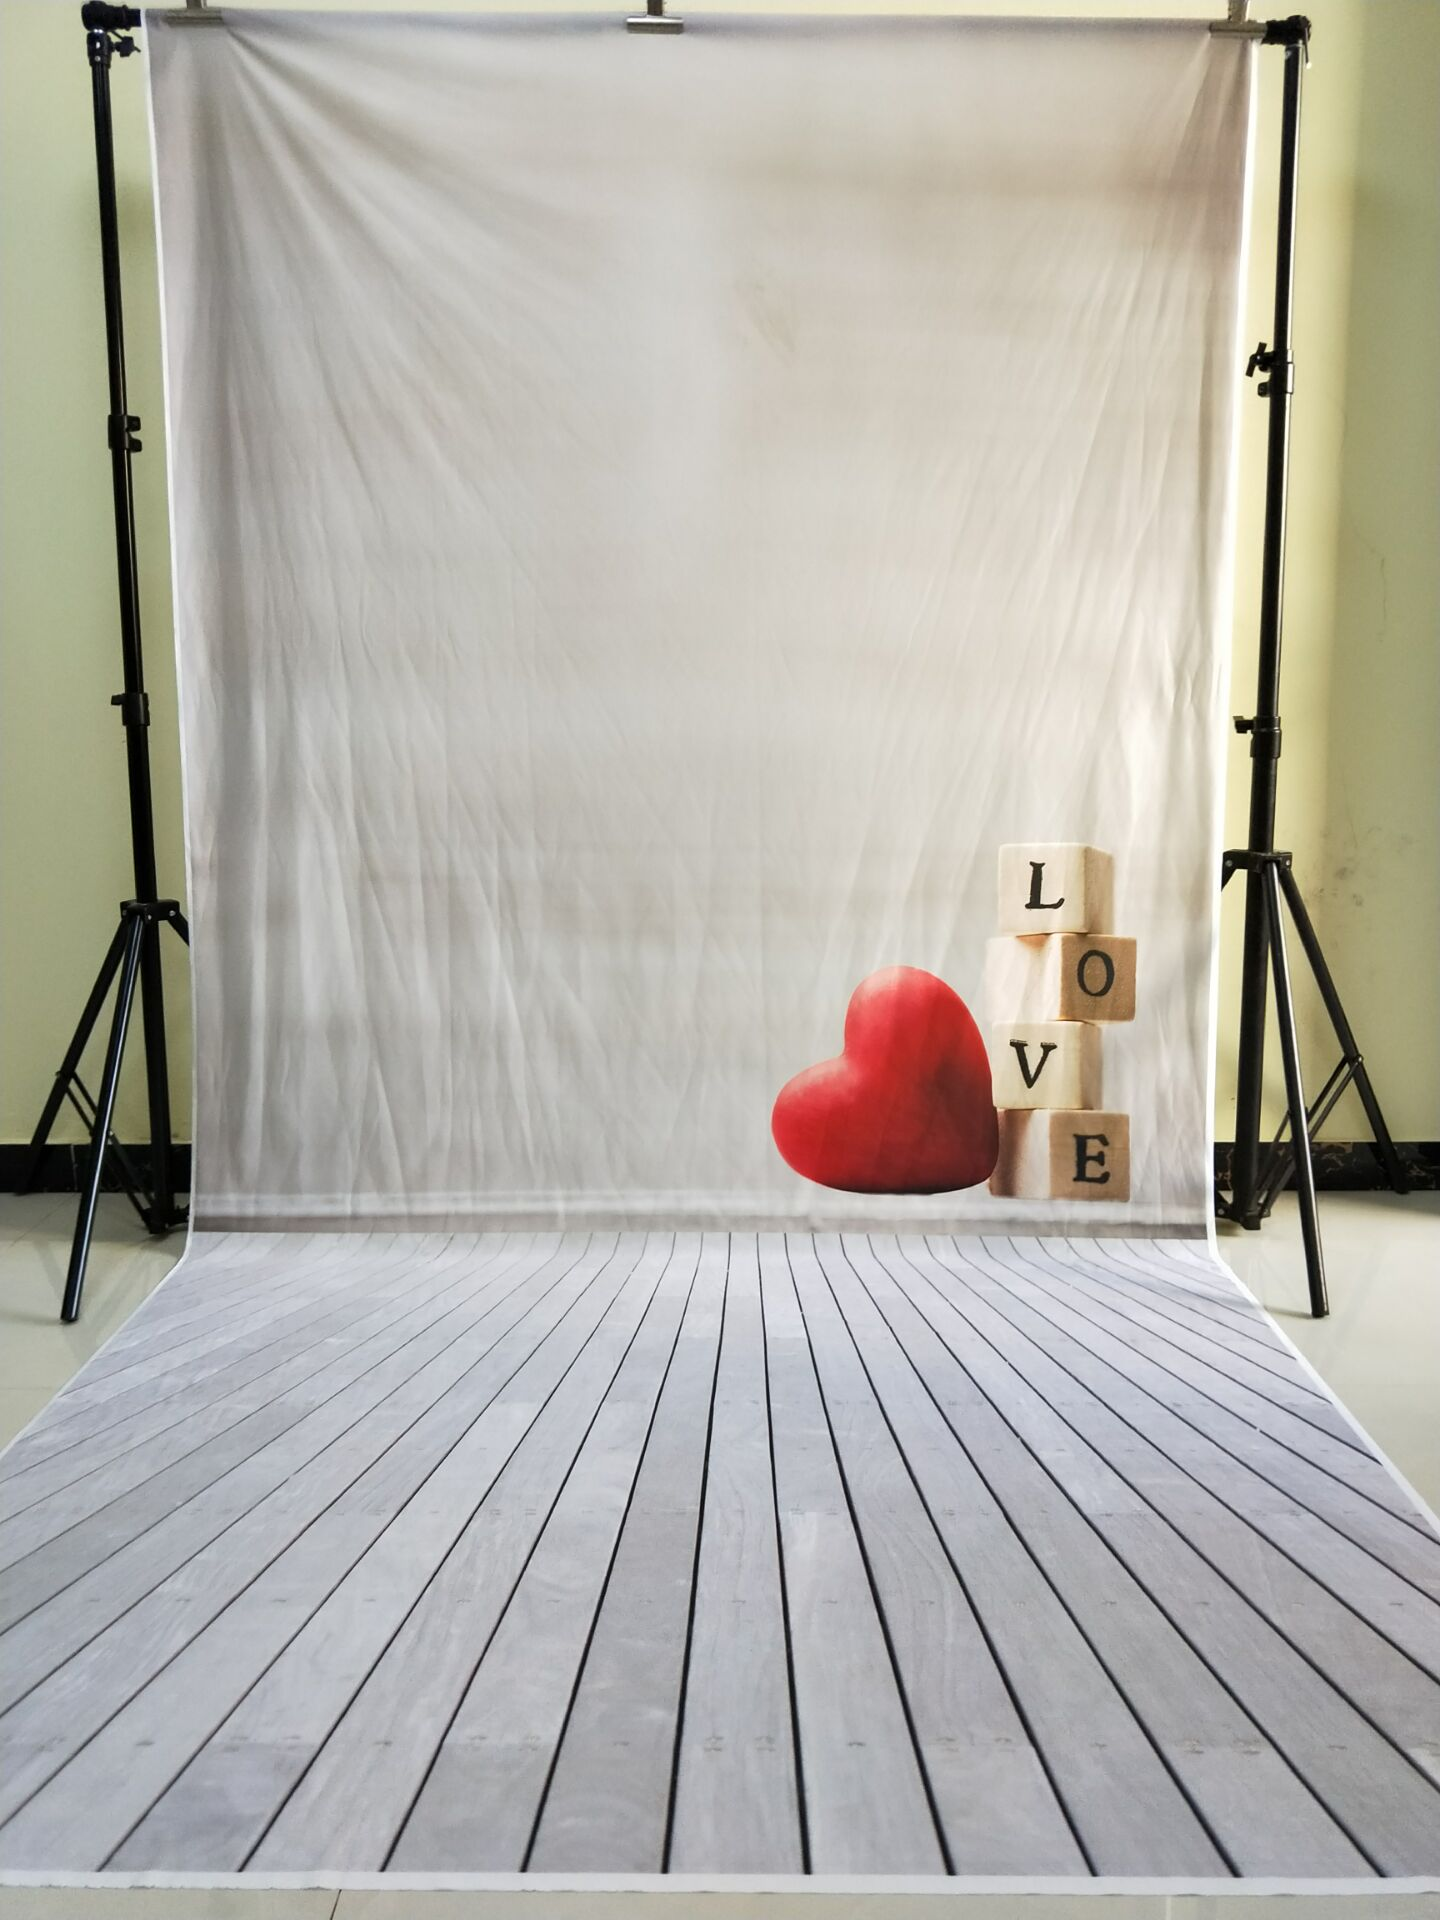 HUAYI 5x10ft Cotton Polyester Photography Backdrop Washable heart backdrops Photo Studios Baby Props Background KP-291 матрас универсальный в коляску esspero baby cotton heart 108068284